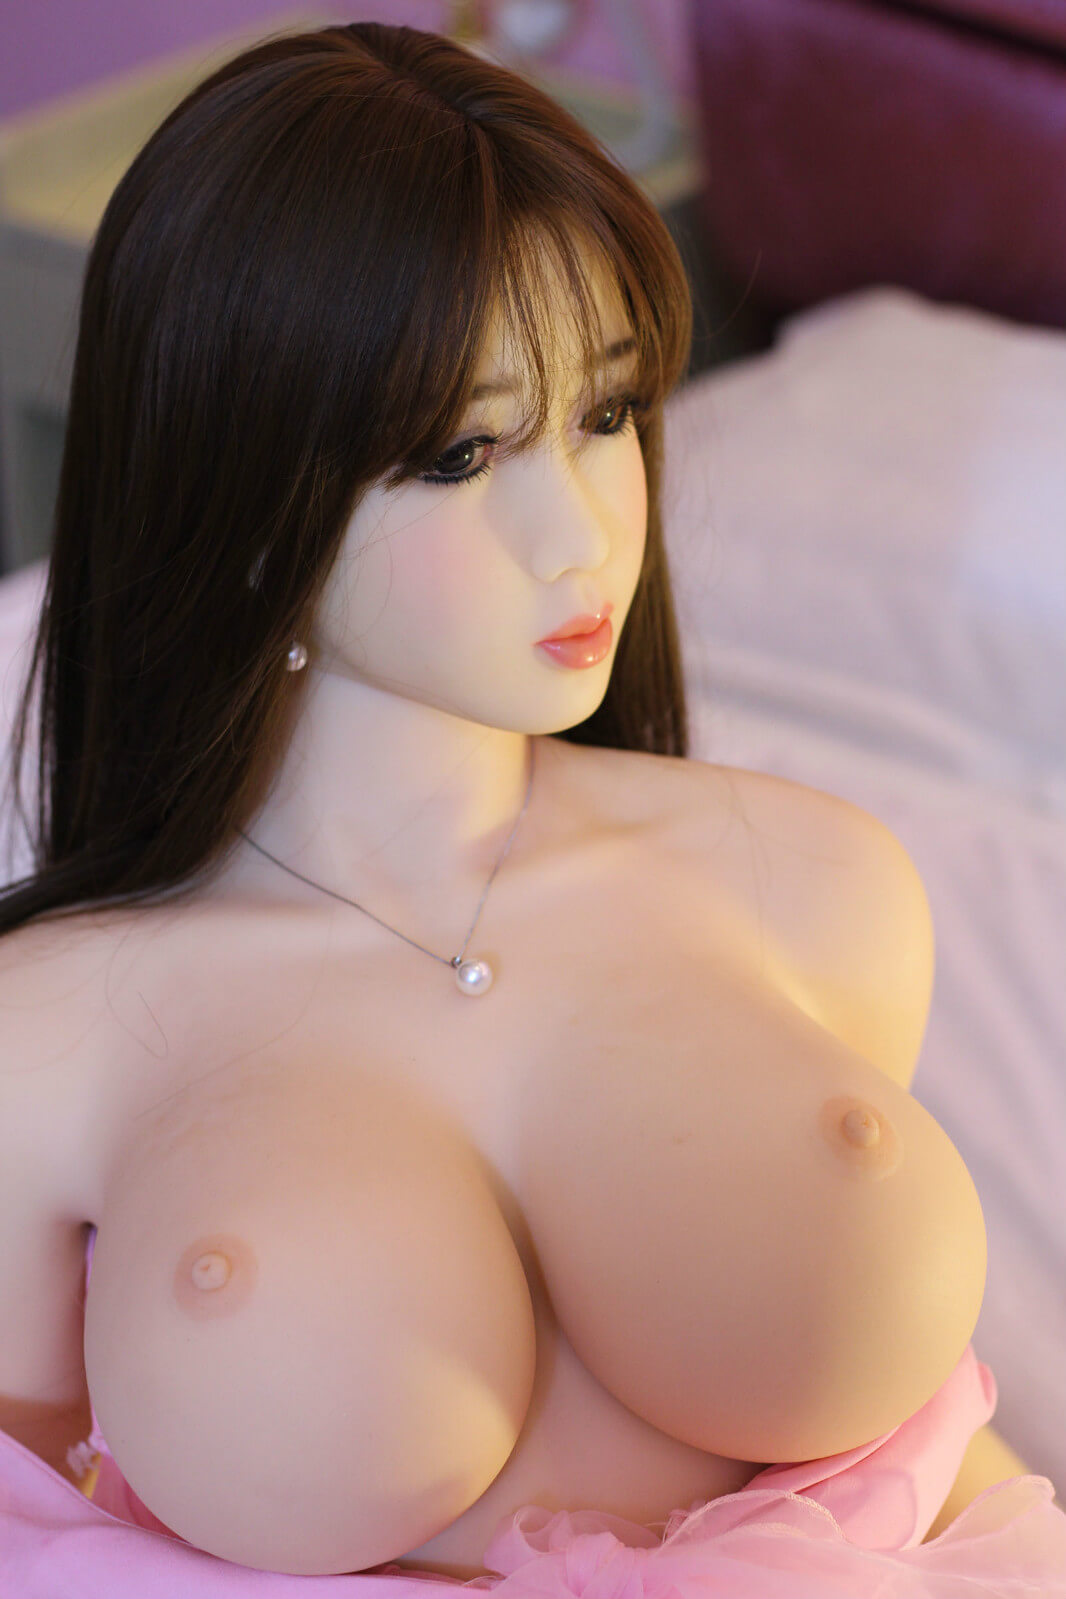 Thai Sex Doll - Aoy